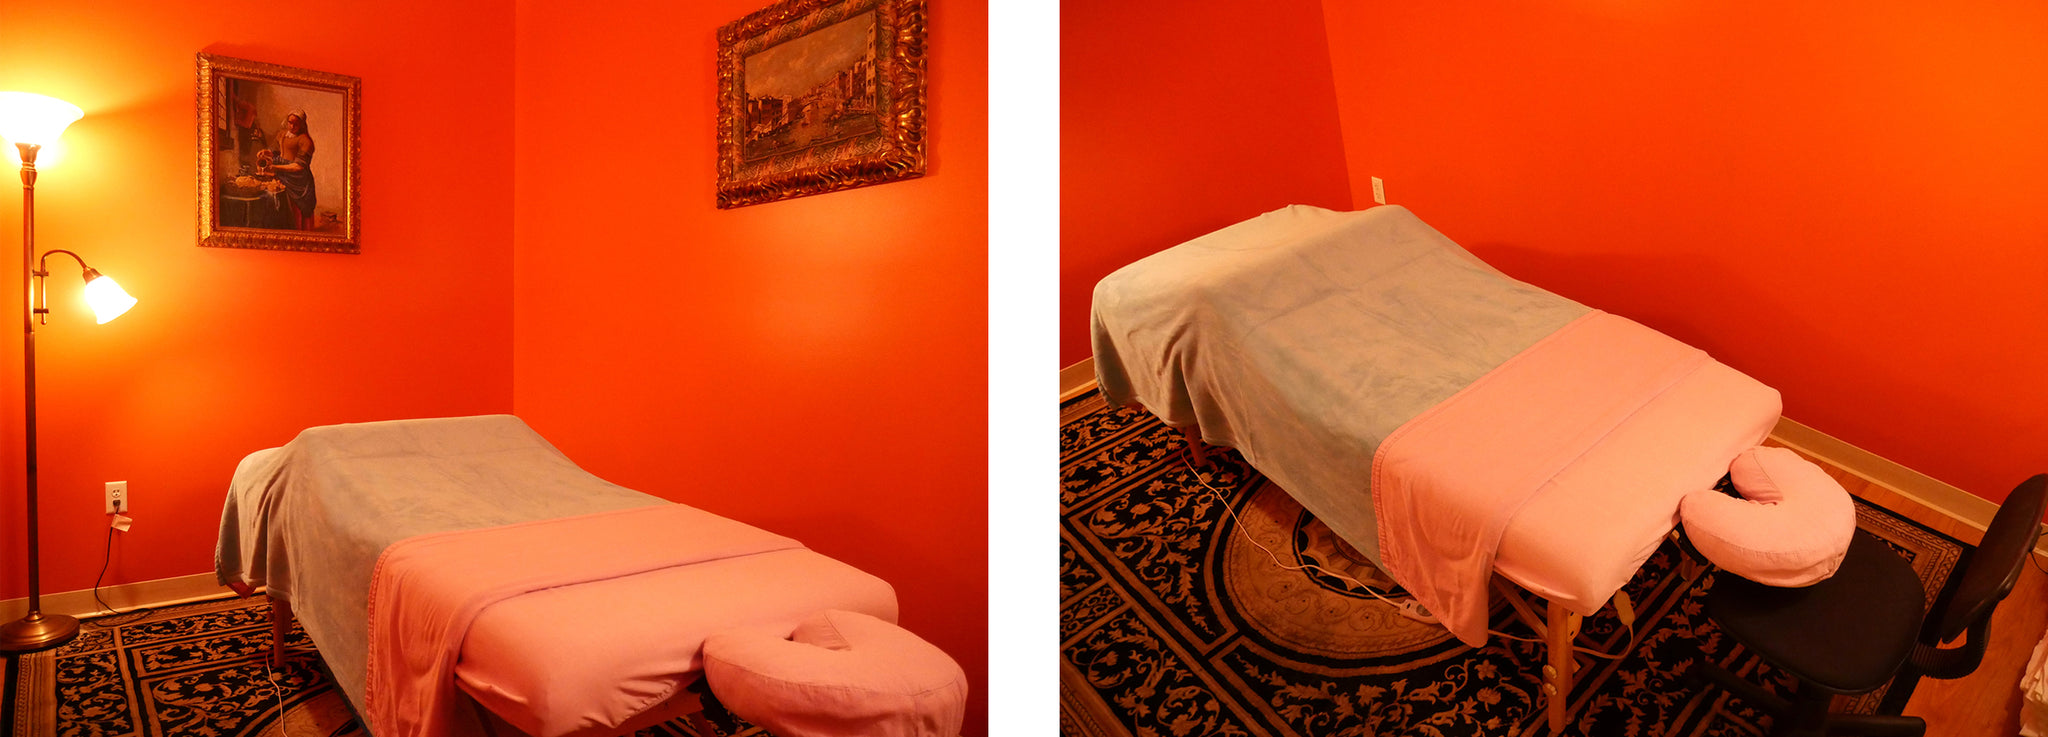 Massage Asheville, Massage Therapy, Message Therapy Asheville